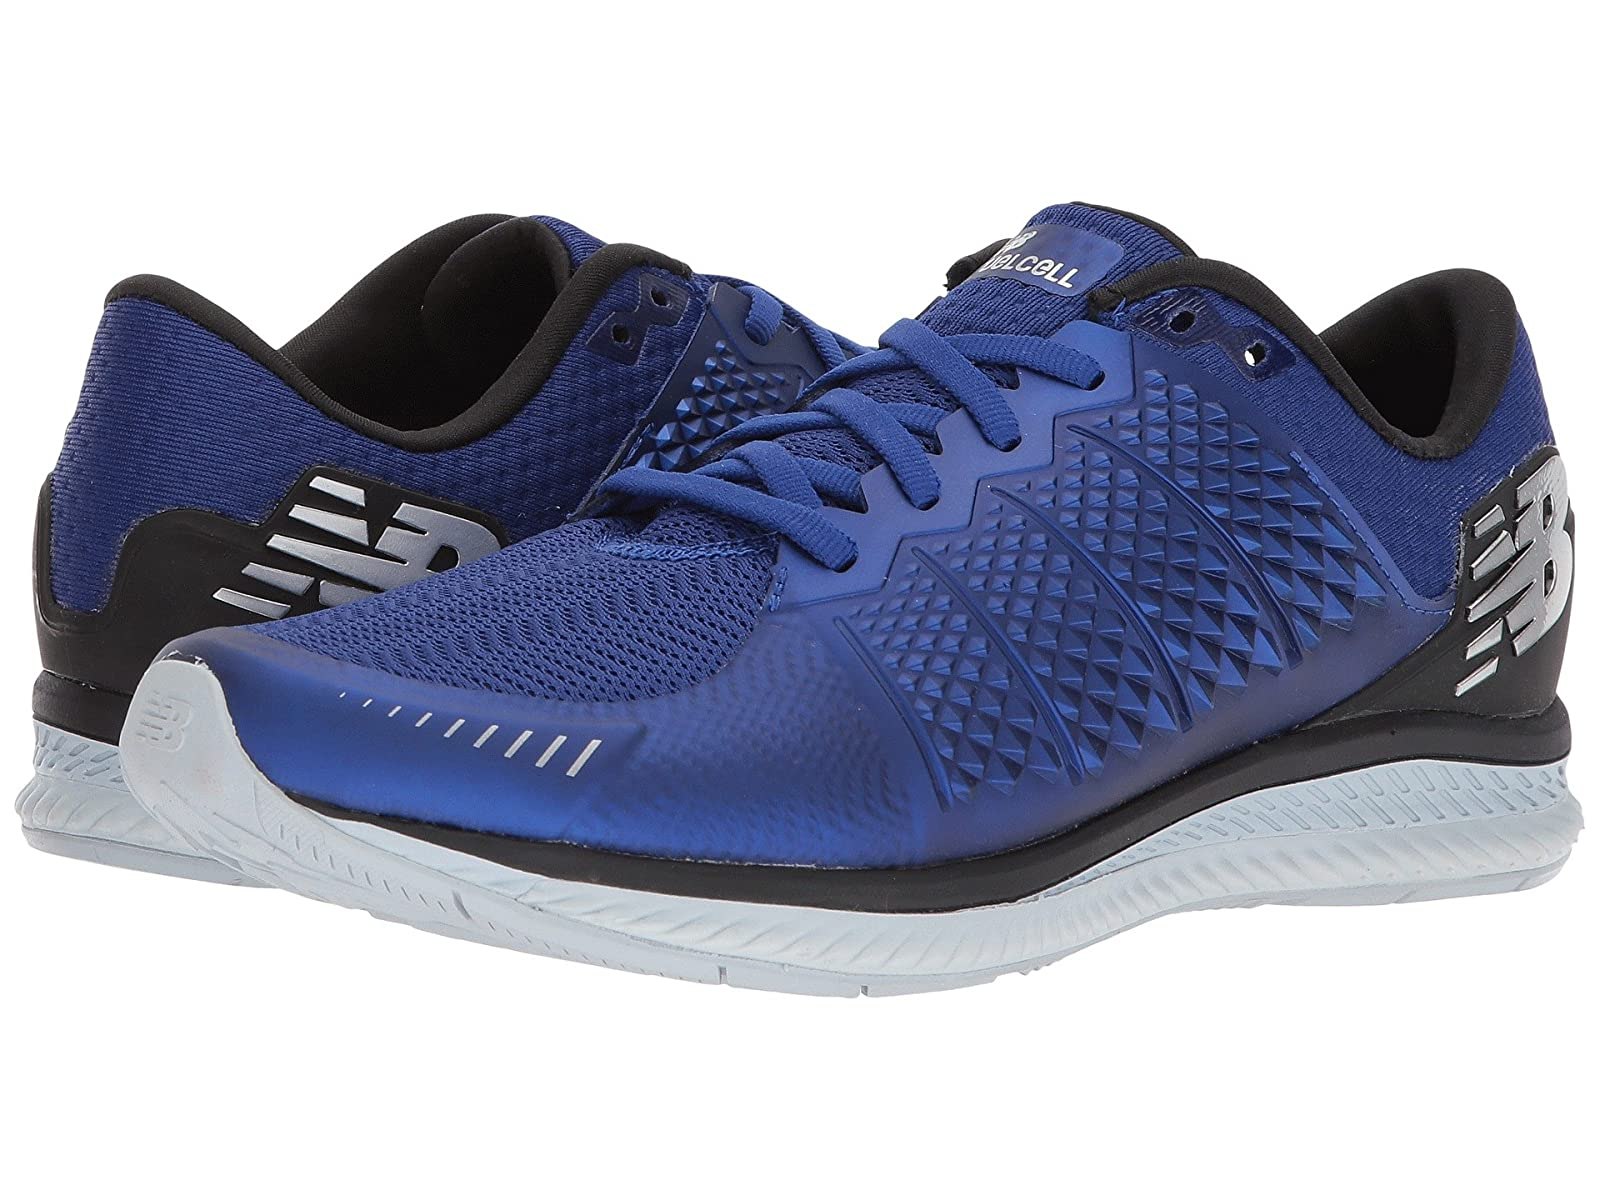 New Balance Fuelcell v1Cheap and distinctive eye-catching shoes